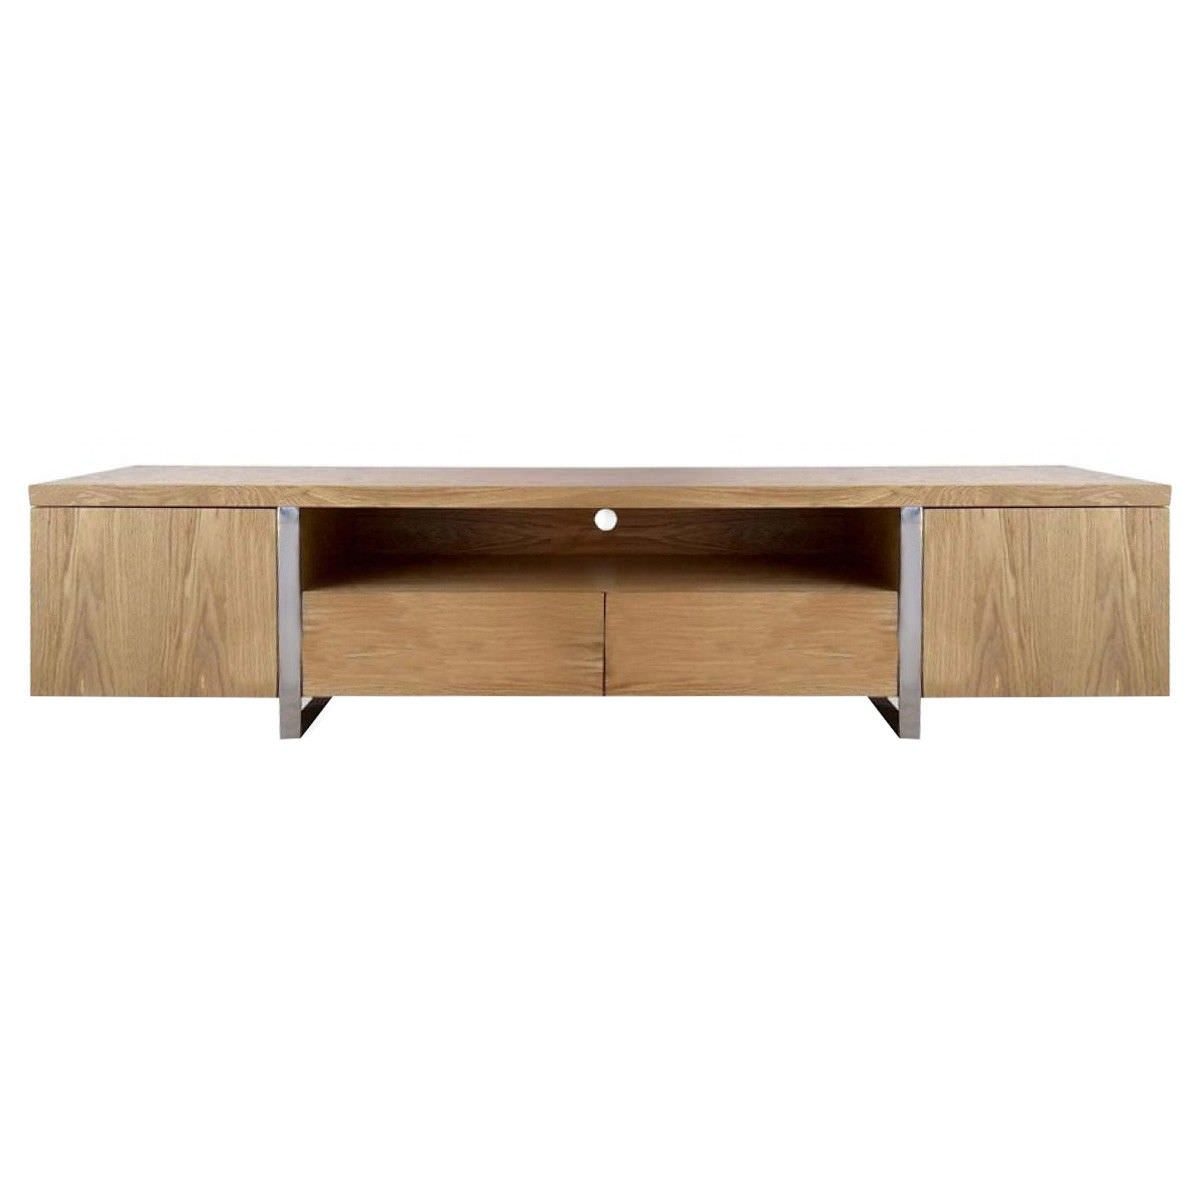 Stanford Wooden 2 Door 2 Drawer Lowline TV Unit, 210cm, Oak